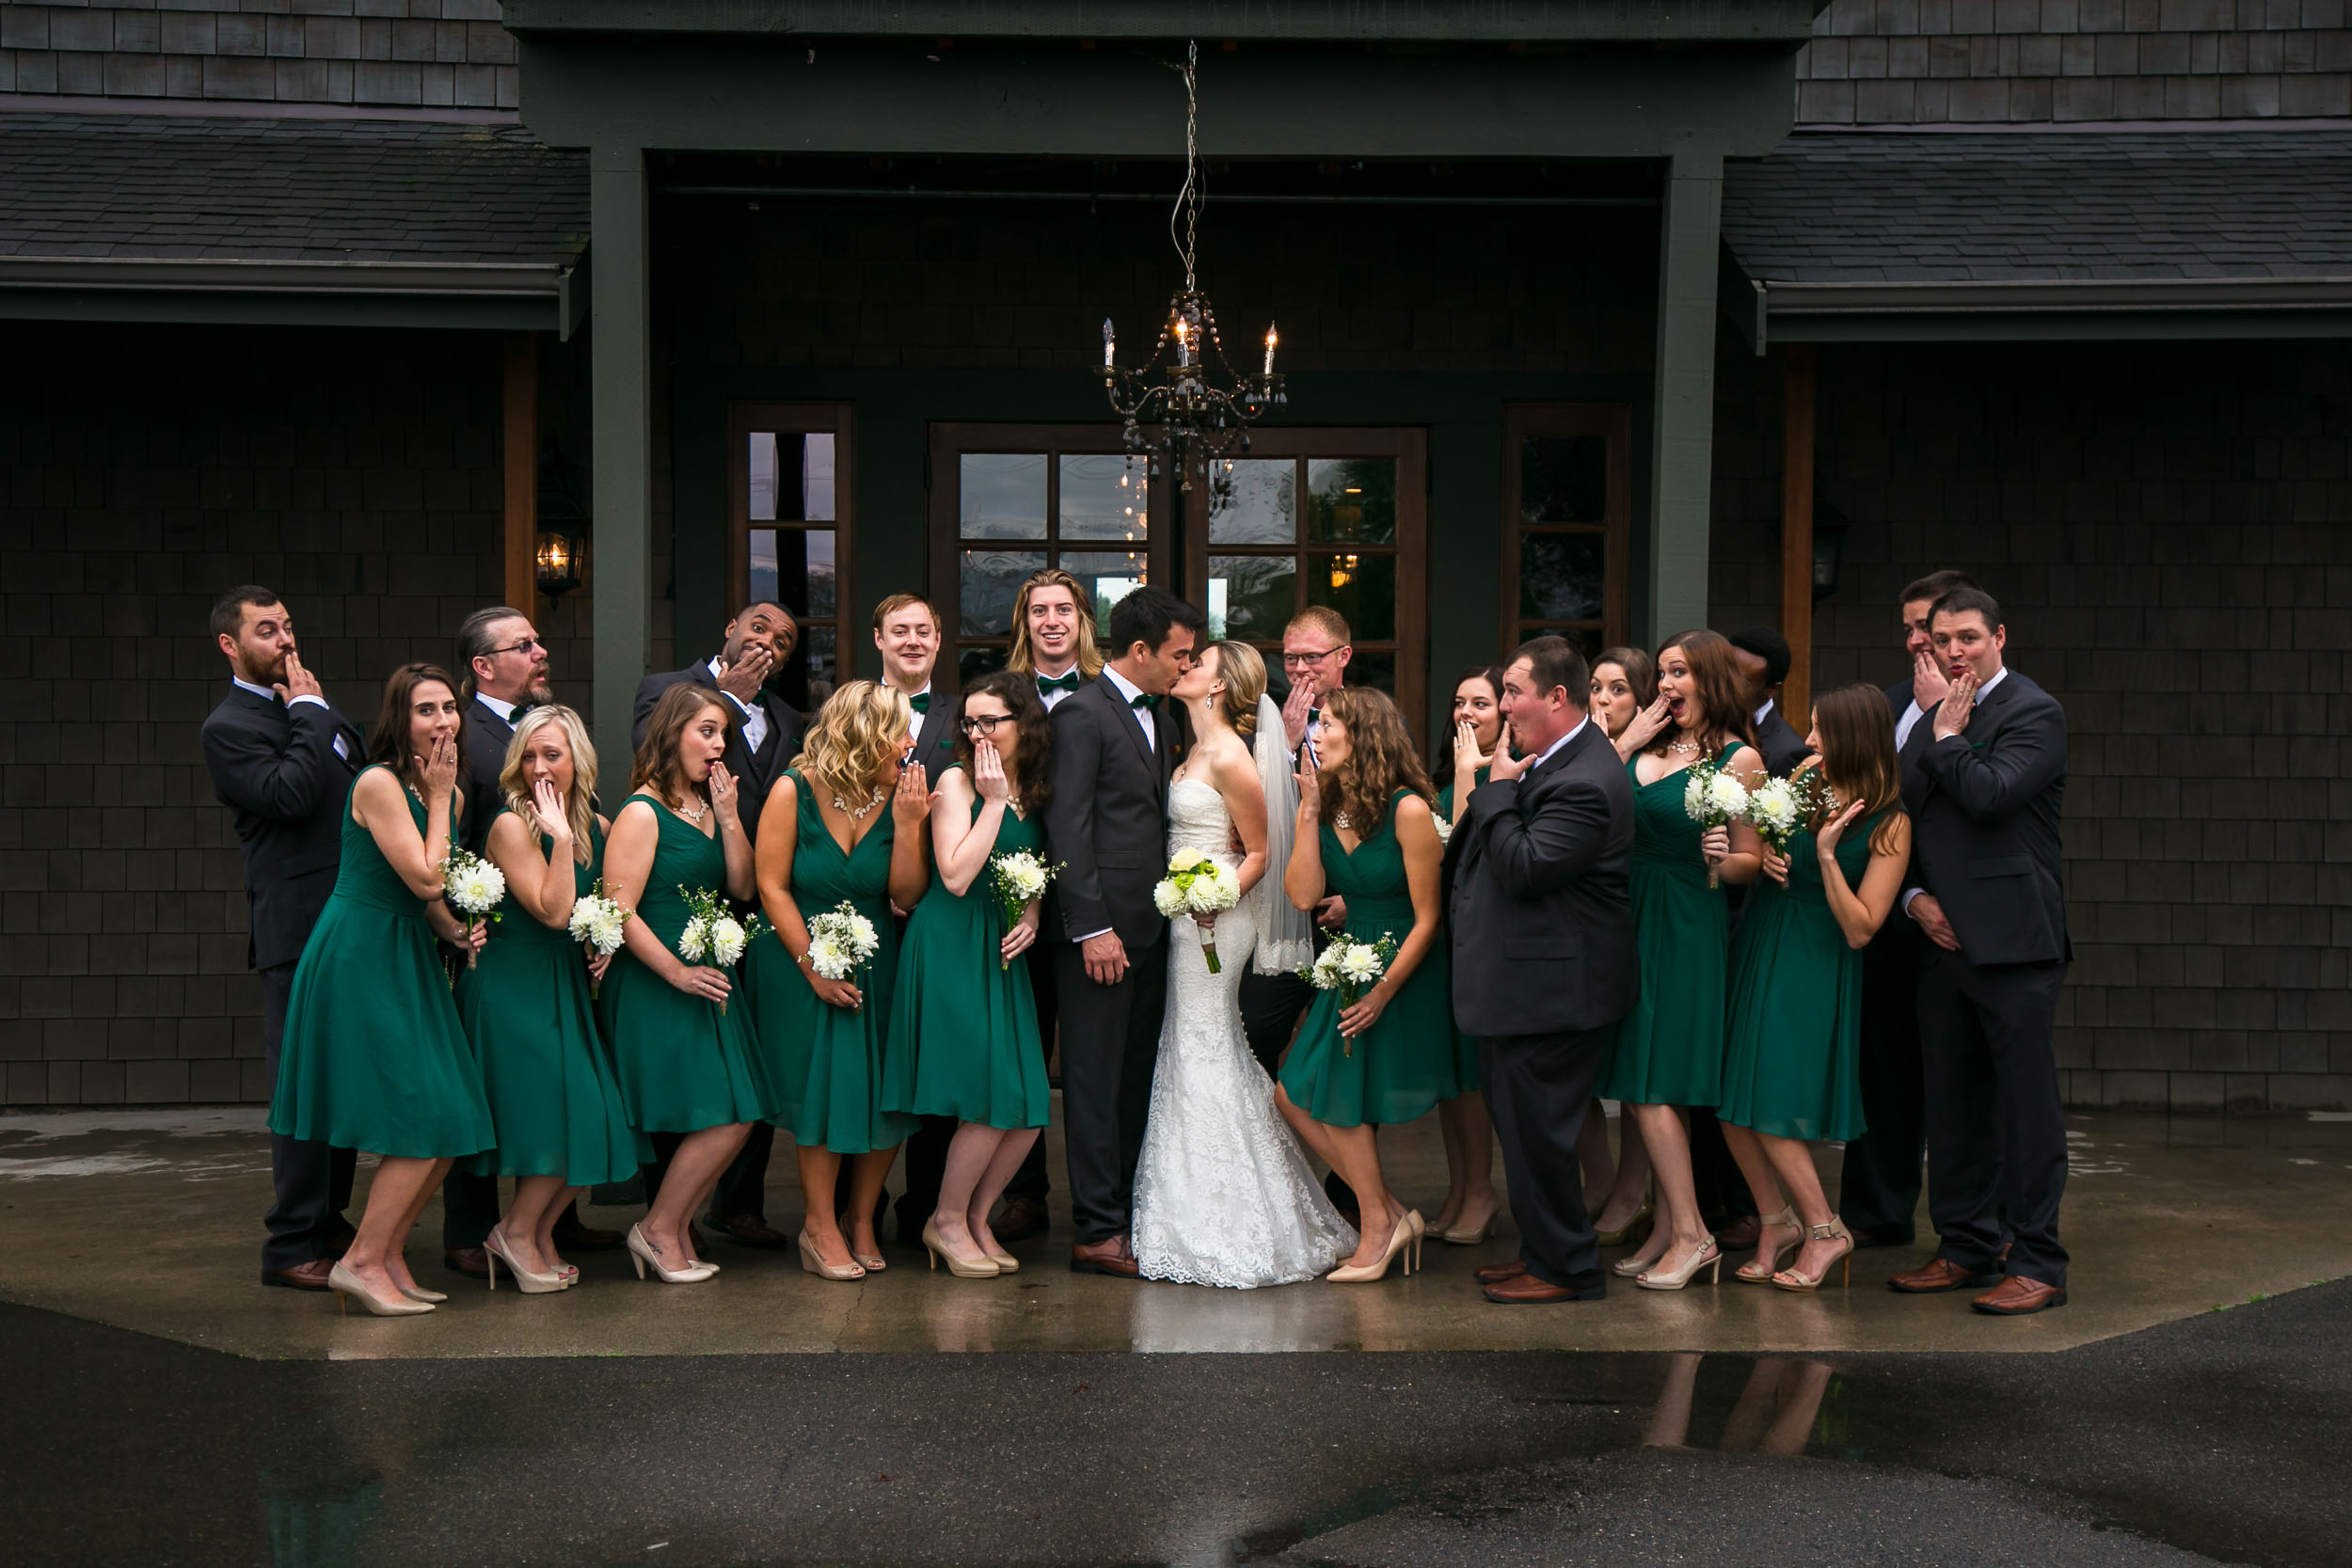 Fall Wedding of bridal party wearing green | Durham Wedding Photographer | By G. Lin Photography